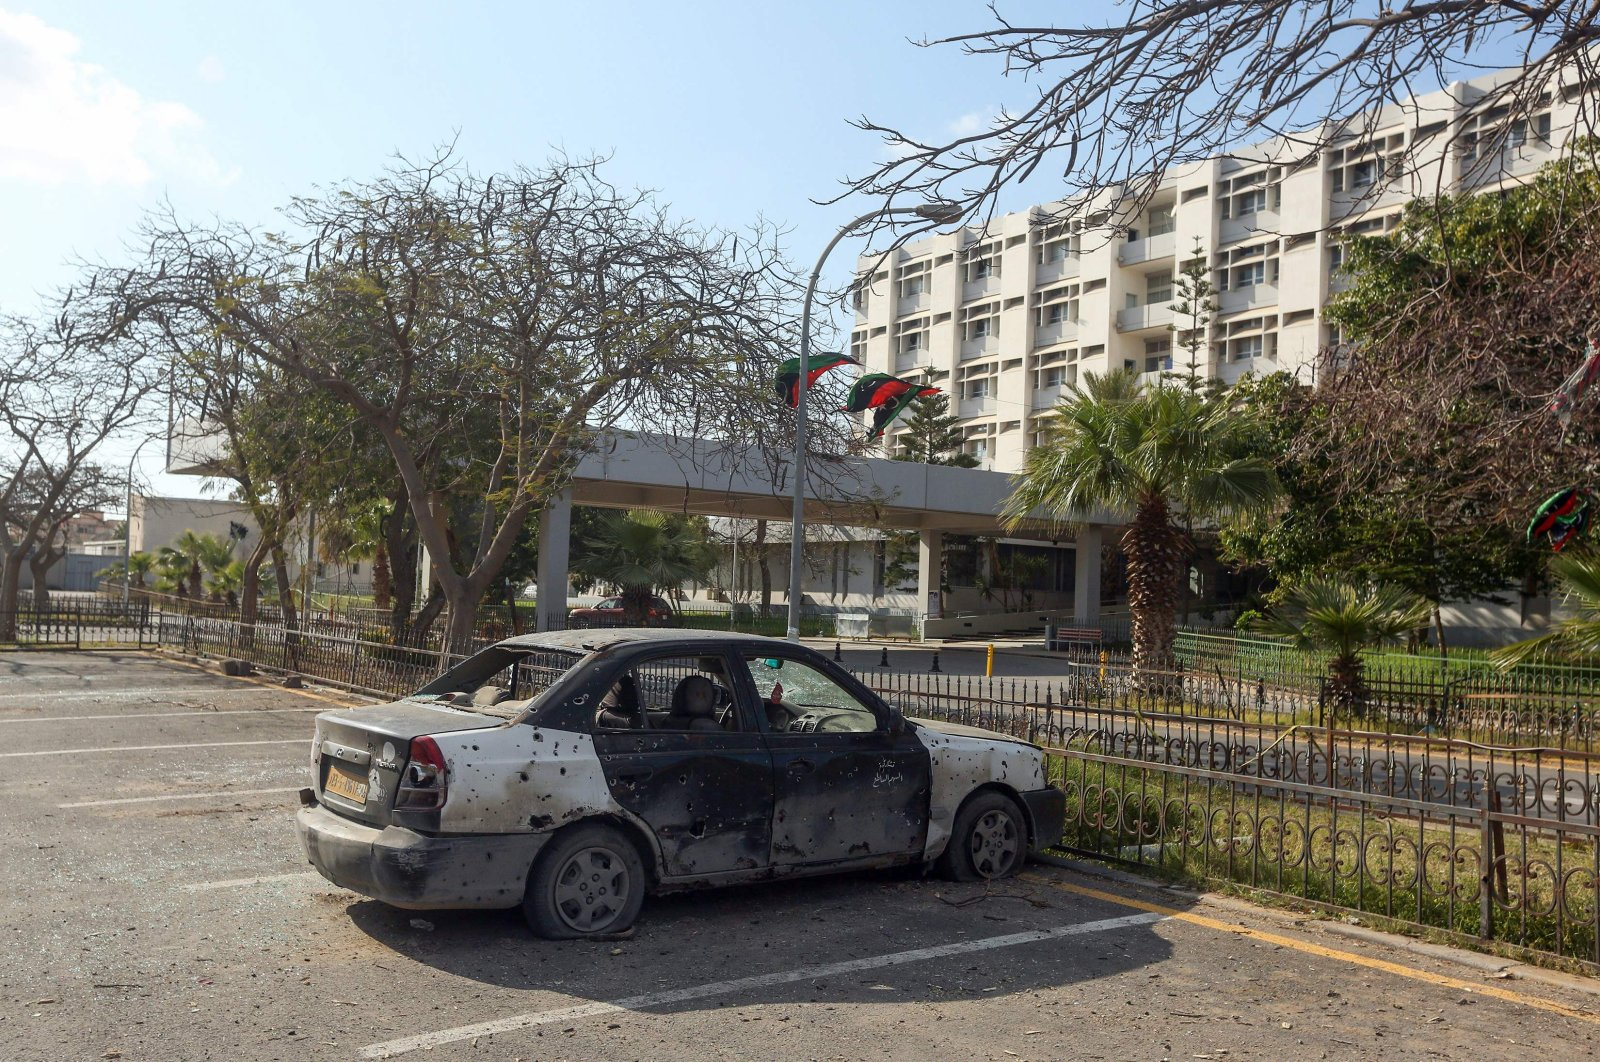 A burnt-out car is seen at the parking lot of Khadra General Hospital which is dedicated to treating people infected with coronavirus (COVID-19) in the Libyan capital Tripoli, Wednesday, April 8, 2020. (AFP)